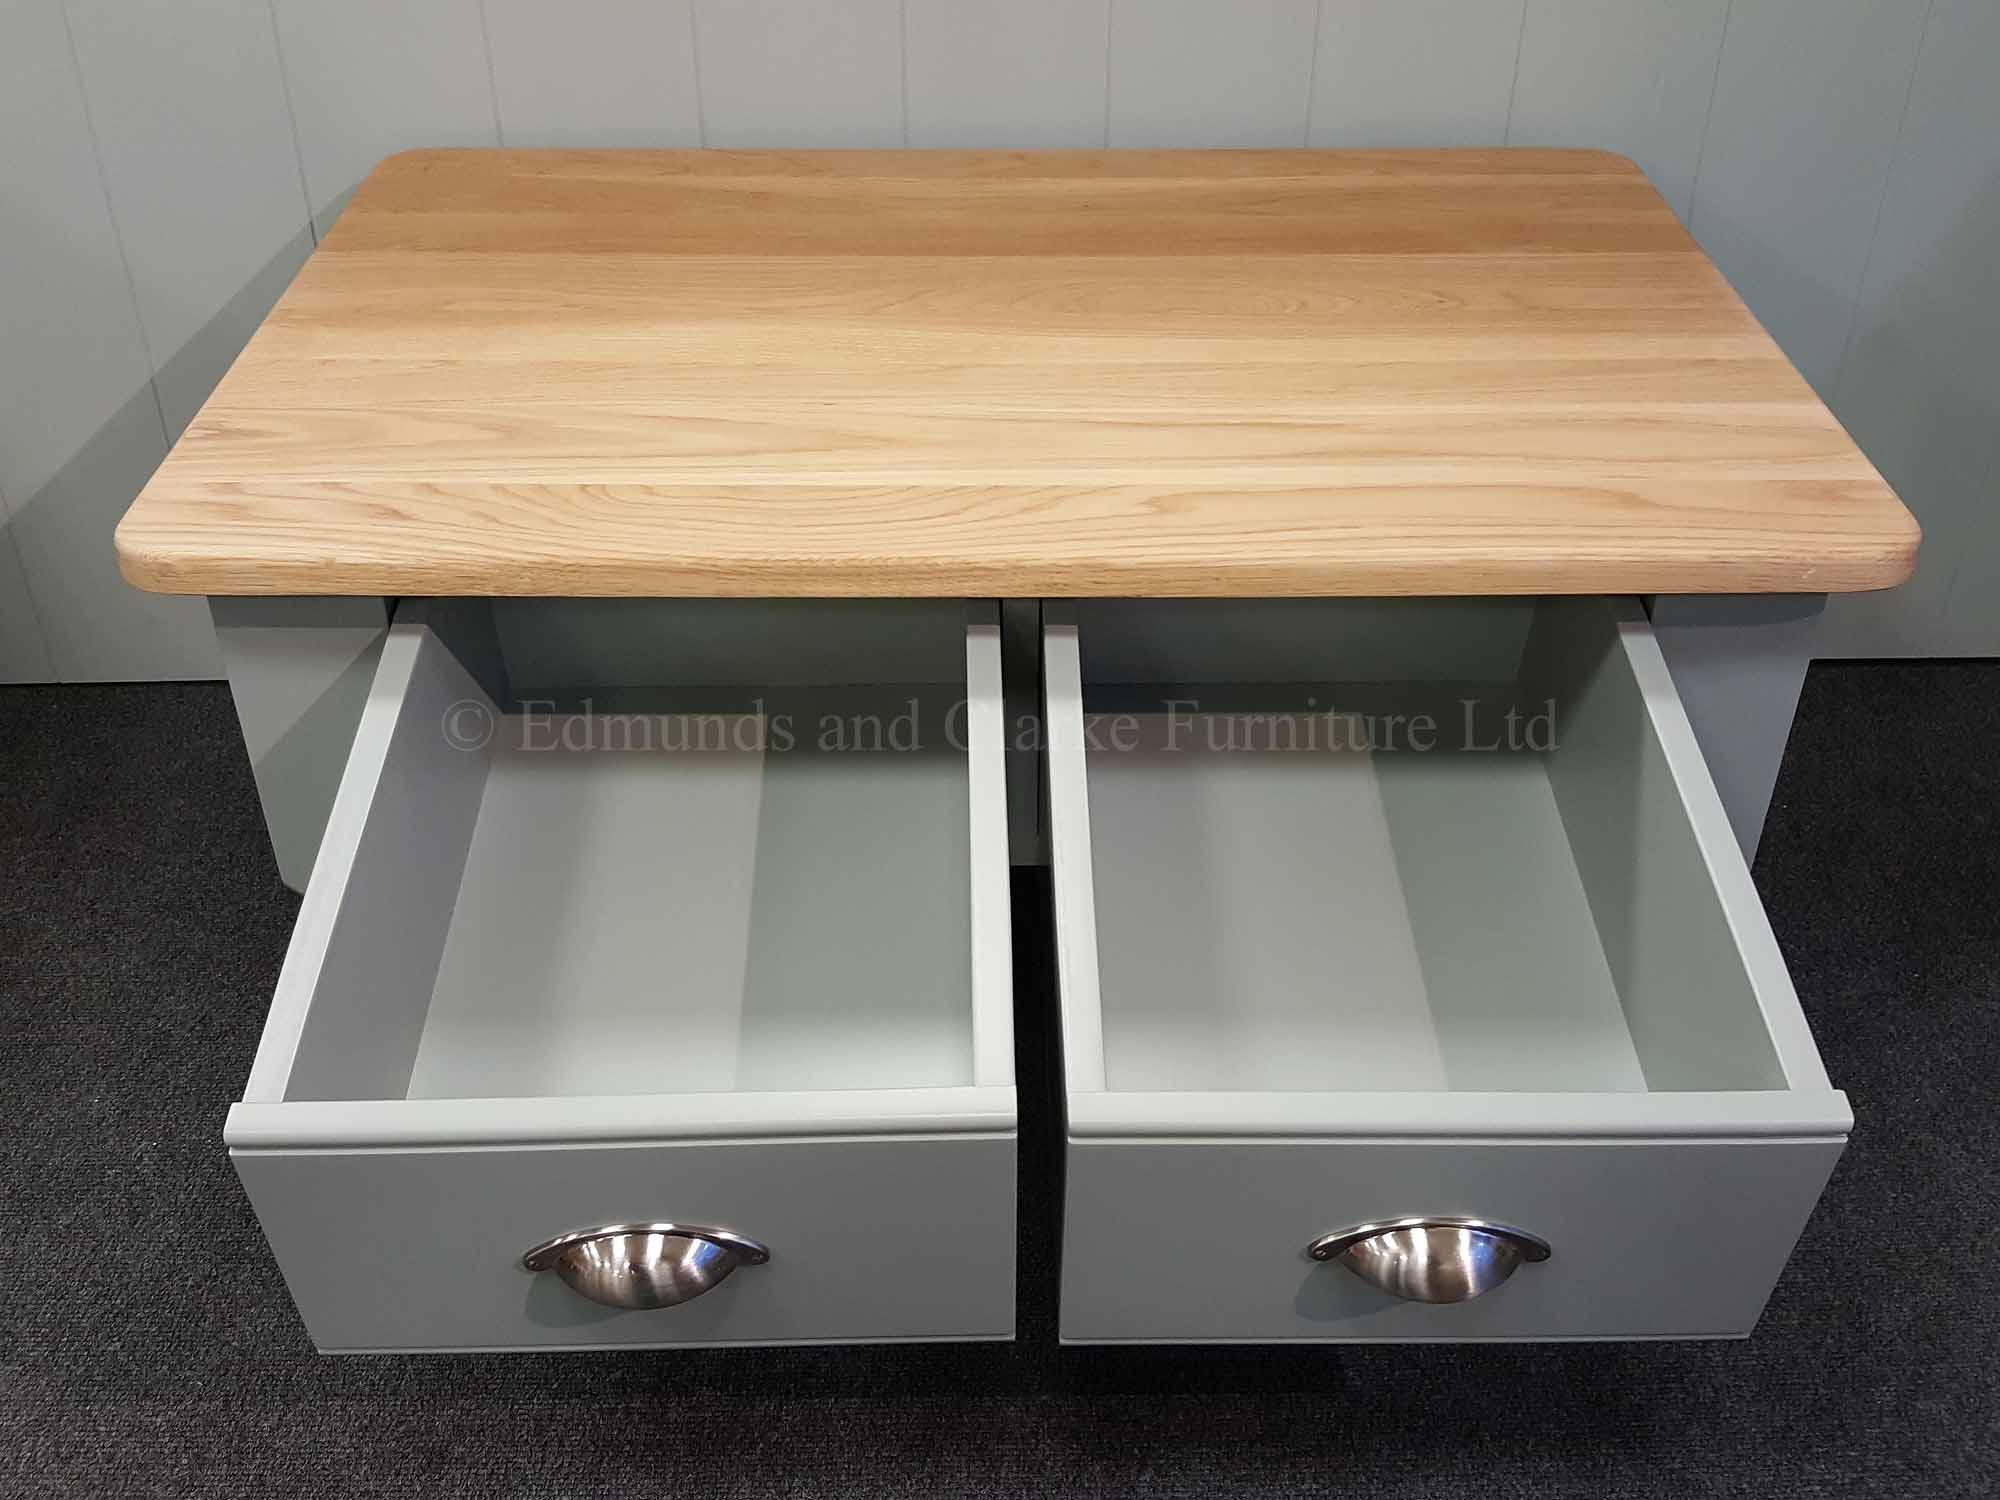 Edmunds 2 drawer coffee table with two deep drawers